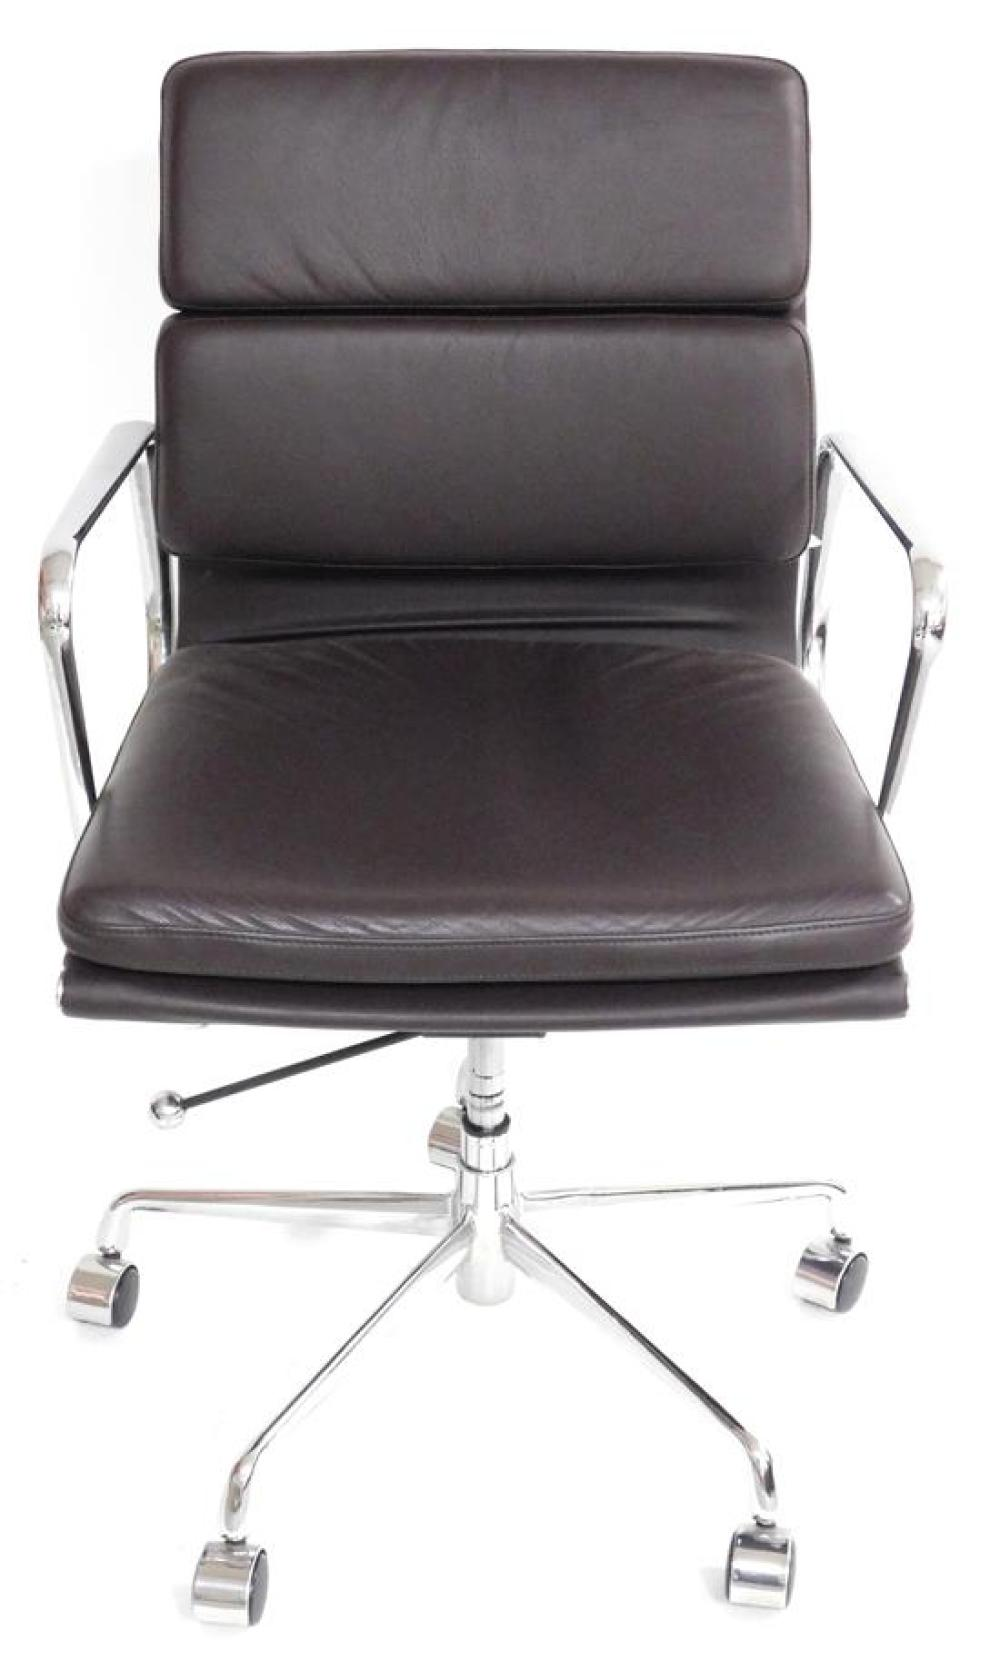 Office chair, Eames-style design with chrome swivel base, brown leather type upholstered seat and back, adjustable seat, chrome arms...